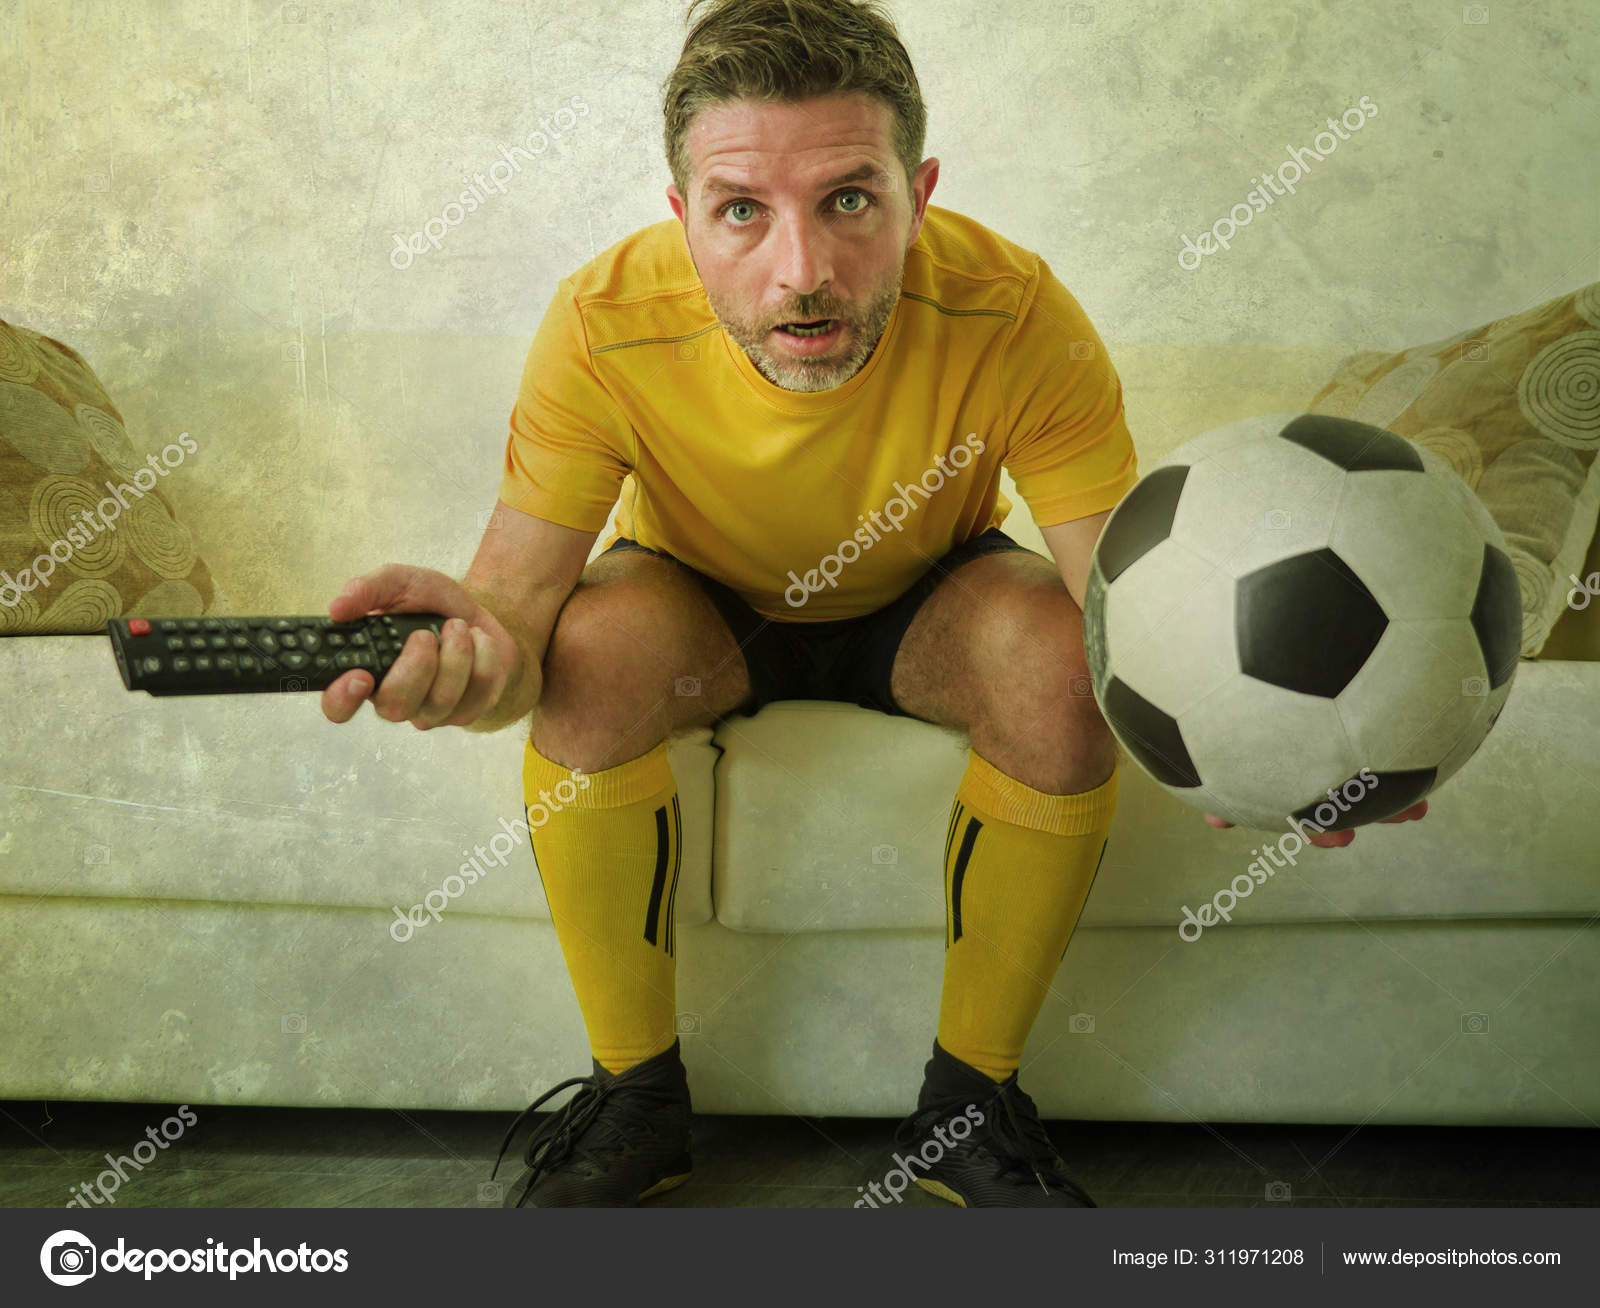 Which one of them do you think you would be? Funny Portrait Of Young Stressed And Excited Football Fan Man Watching Soccer Game On Tv At Home Couch Dressed In Team Player Uniform Feeling Stress And Emotion Stock Photo By C Thevisualsyouneed 311971208